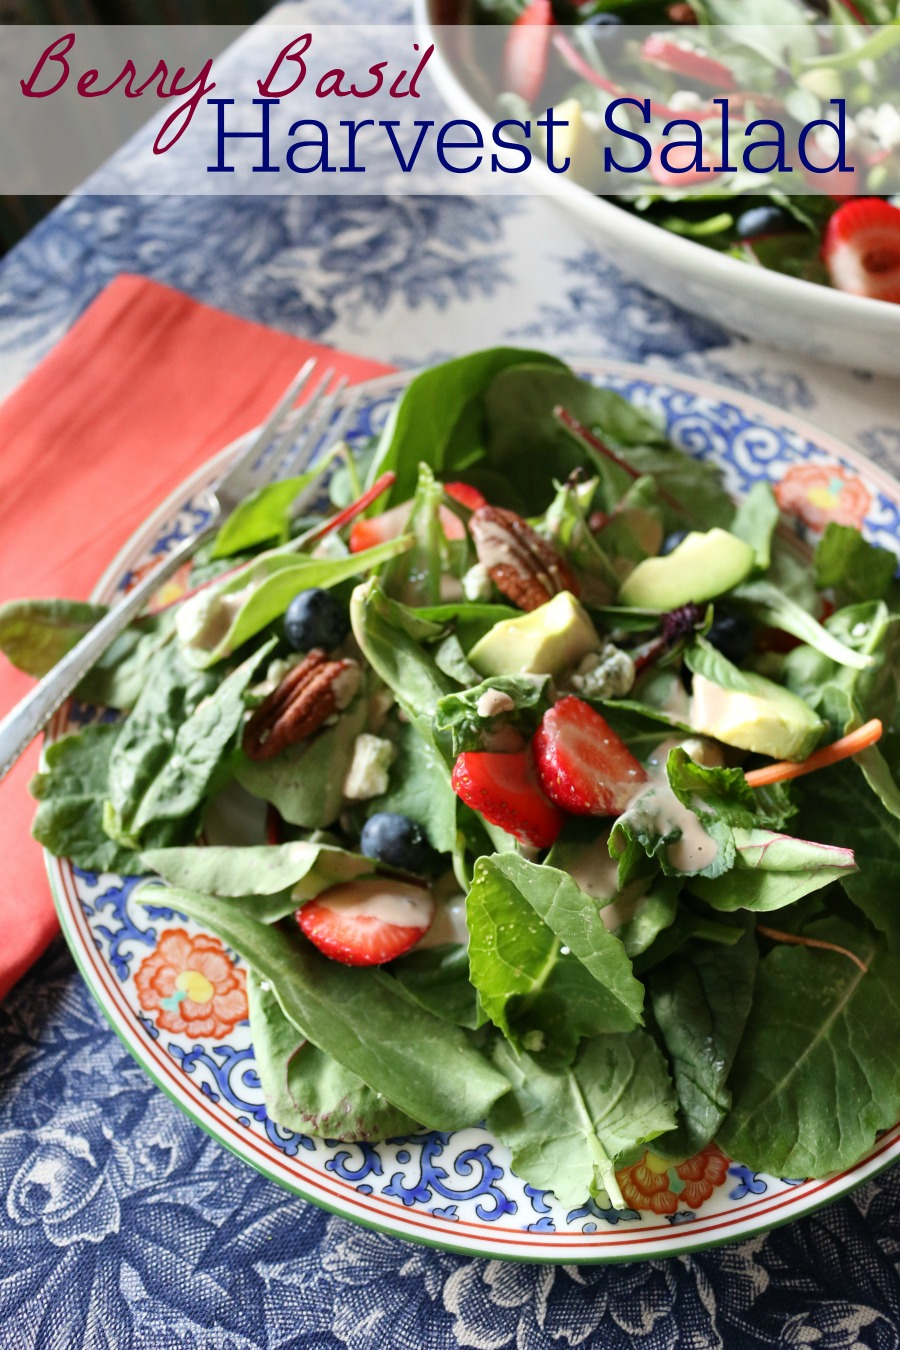 Berry Basil Harvest Salad with a slightly sweet honey vinaigrette.